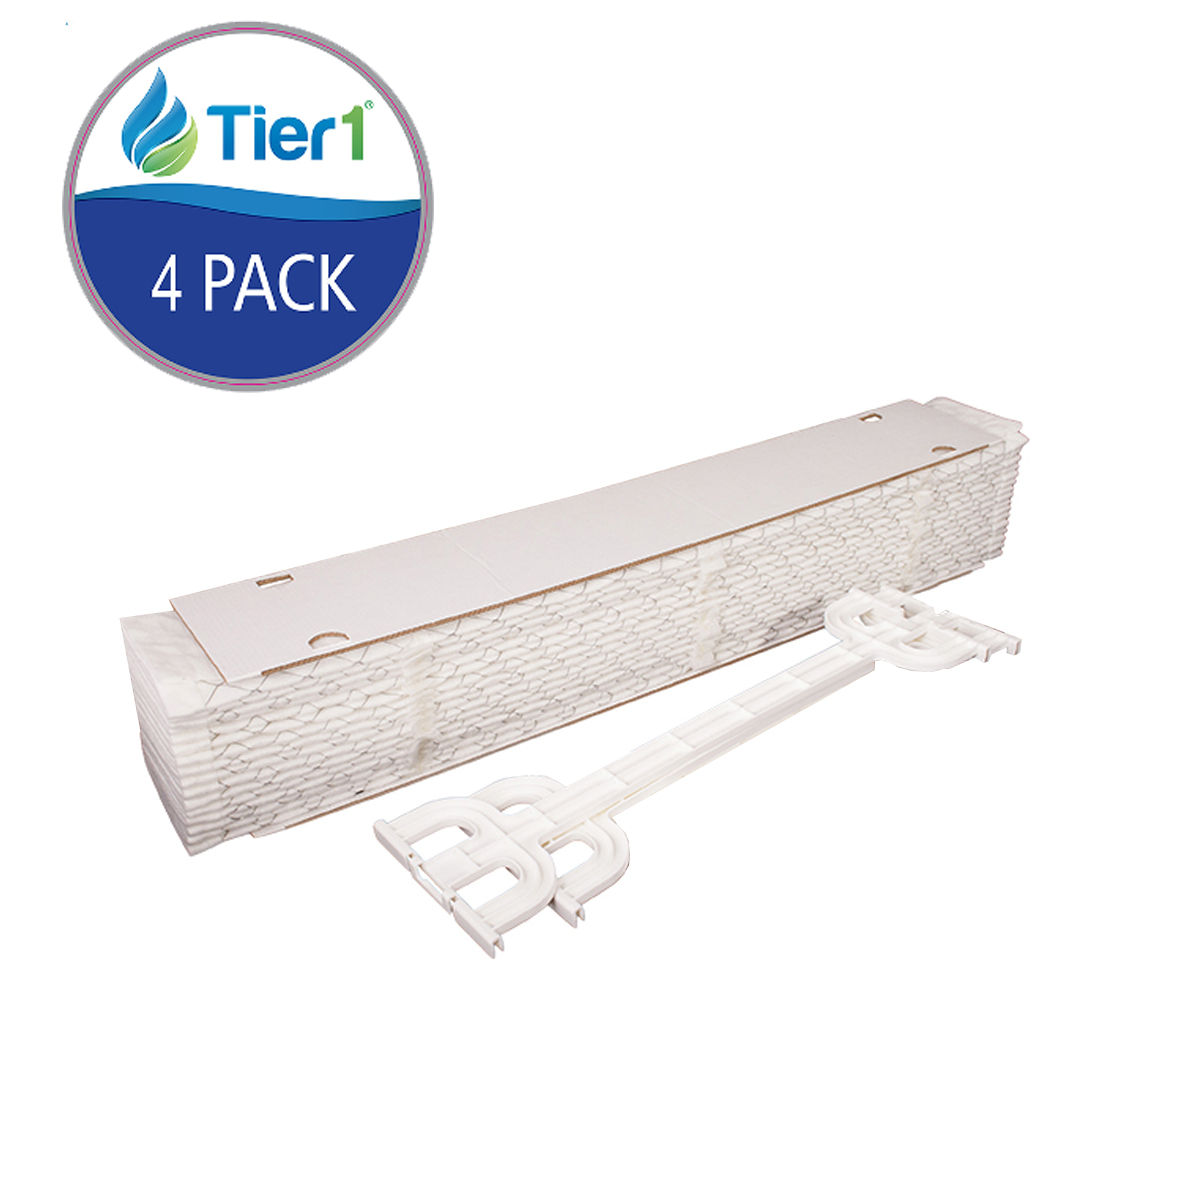 Aprilaire Air Purifier Replacement Filter 213 by Tier1 (4-Pack) TIER1_AF213_4_PACK